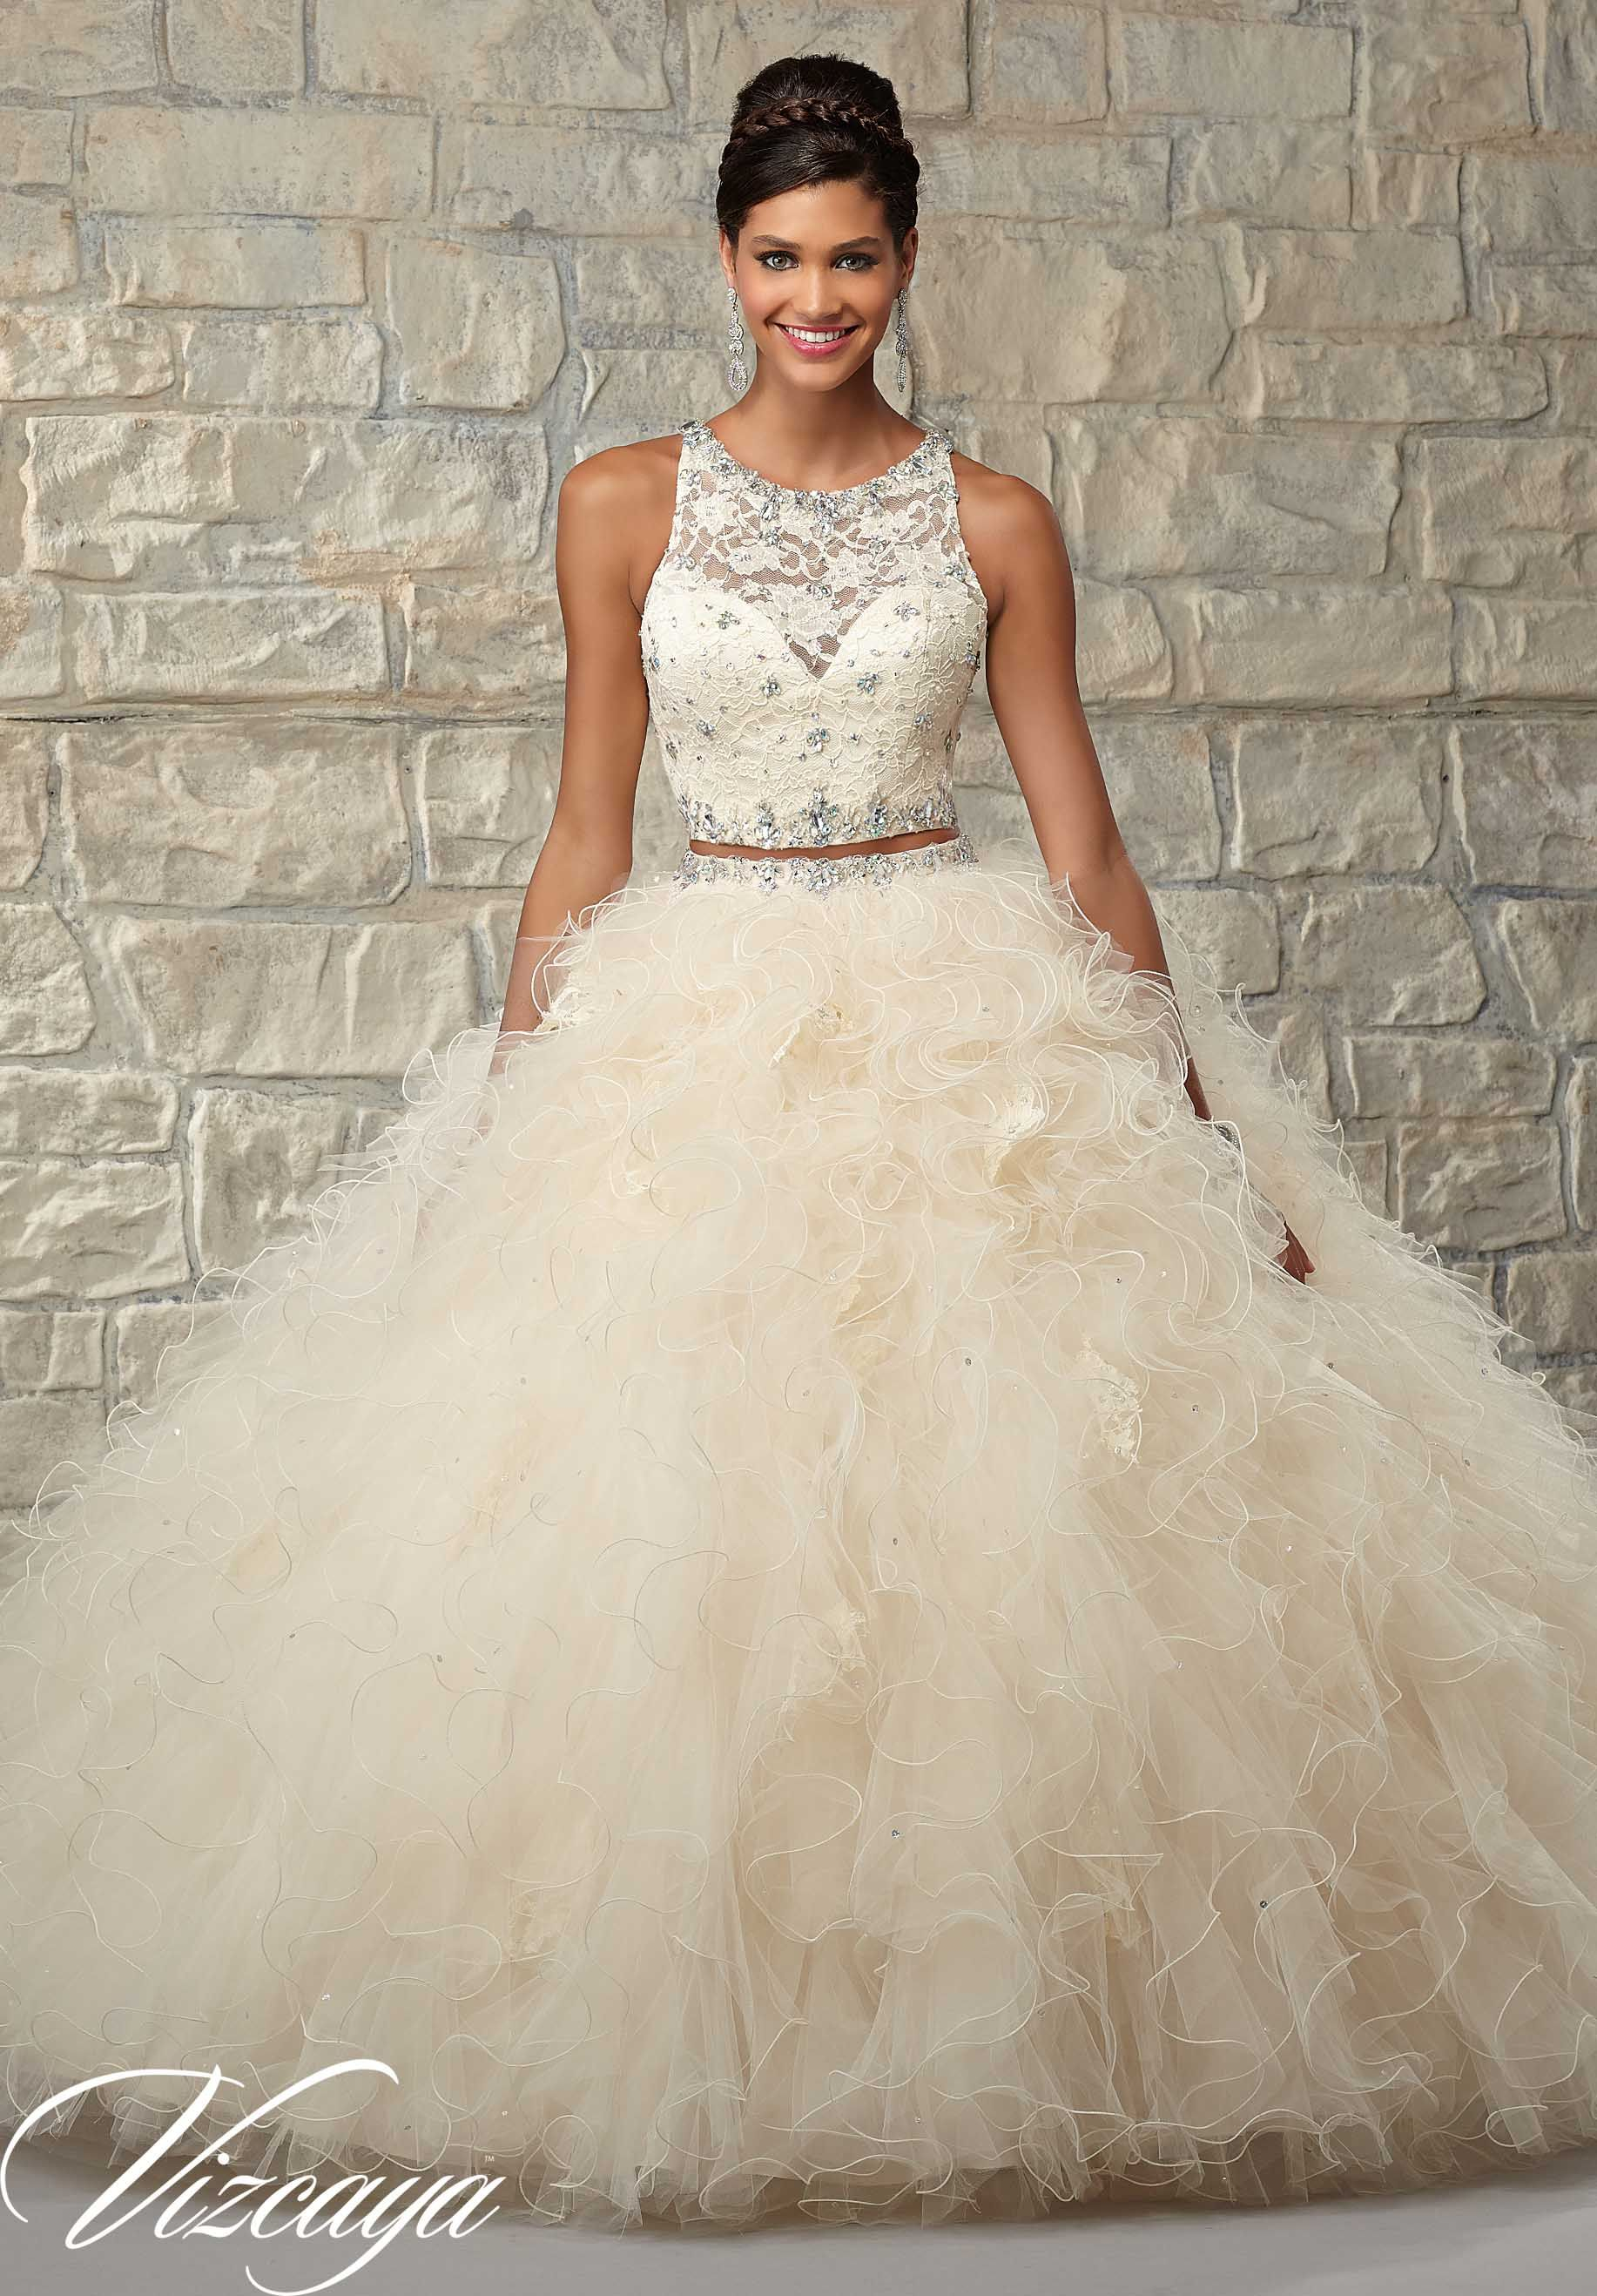 5bcc33cffca 89026 Quinceanera Gowns Two-Piece Ruffled Tulle Skirt with Lace .